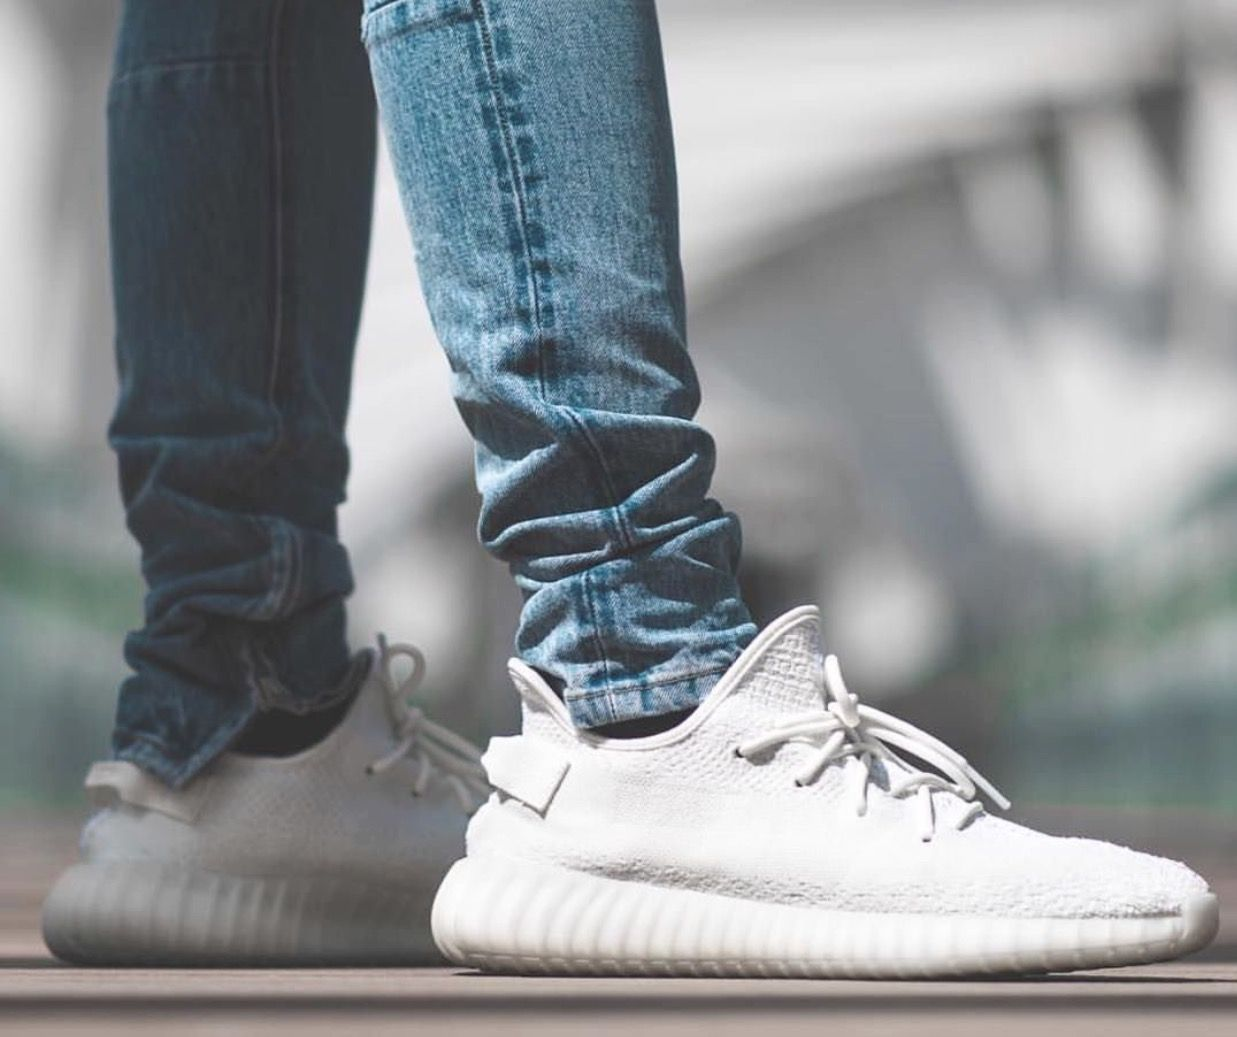 f76506674354e Upcoming release (29 4 17)  adidas Yeezy Boost 350 V2 White Cream White